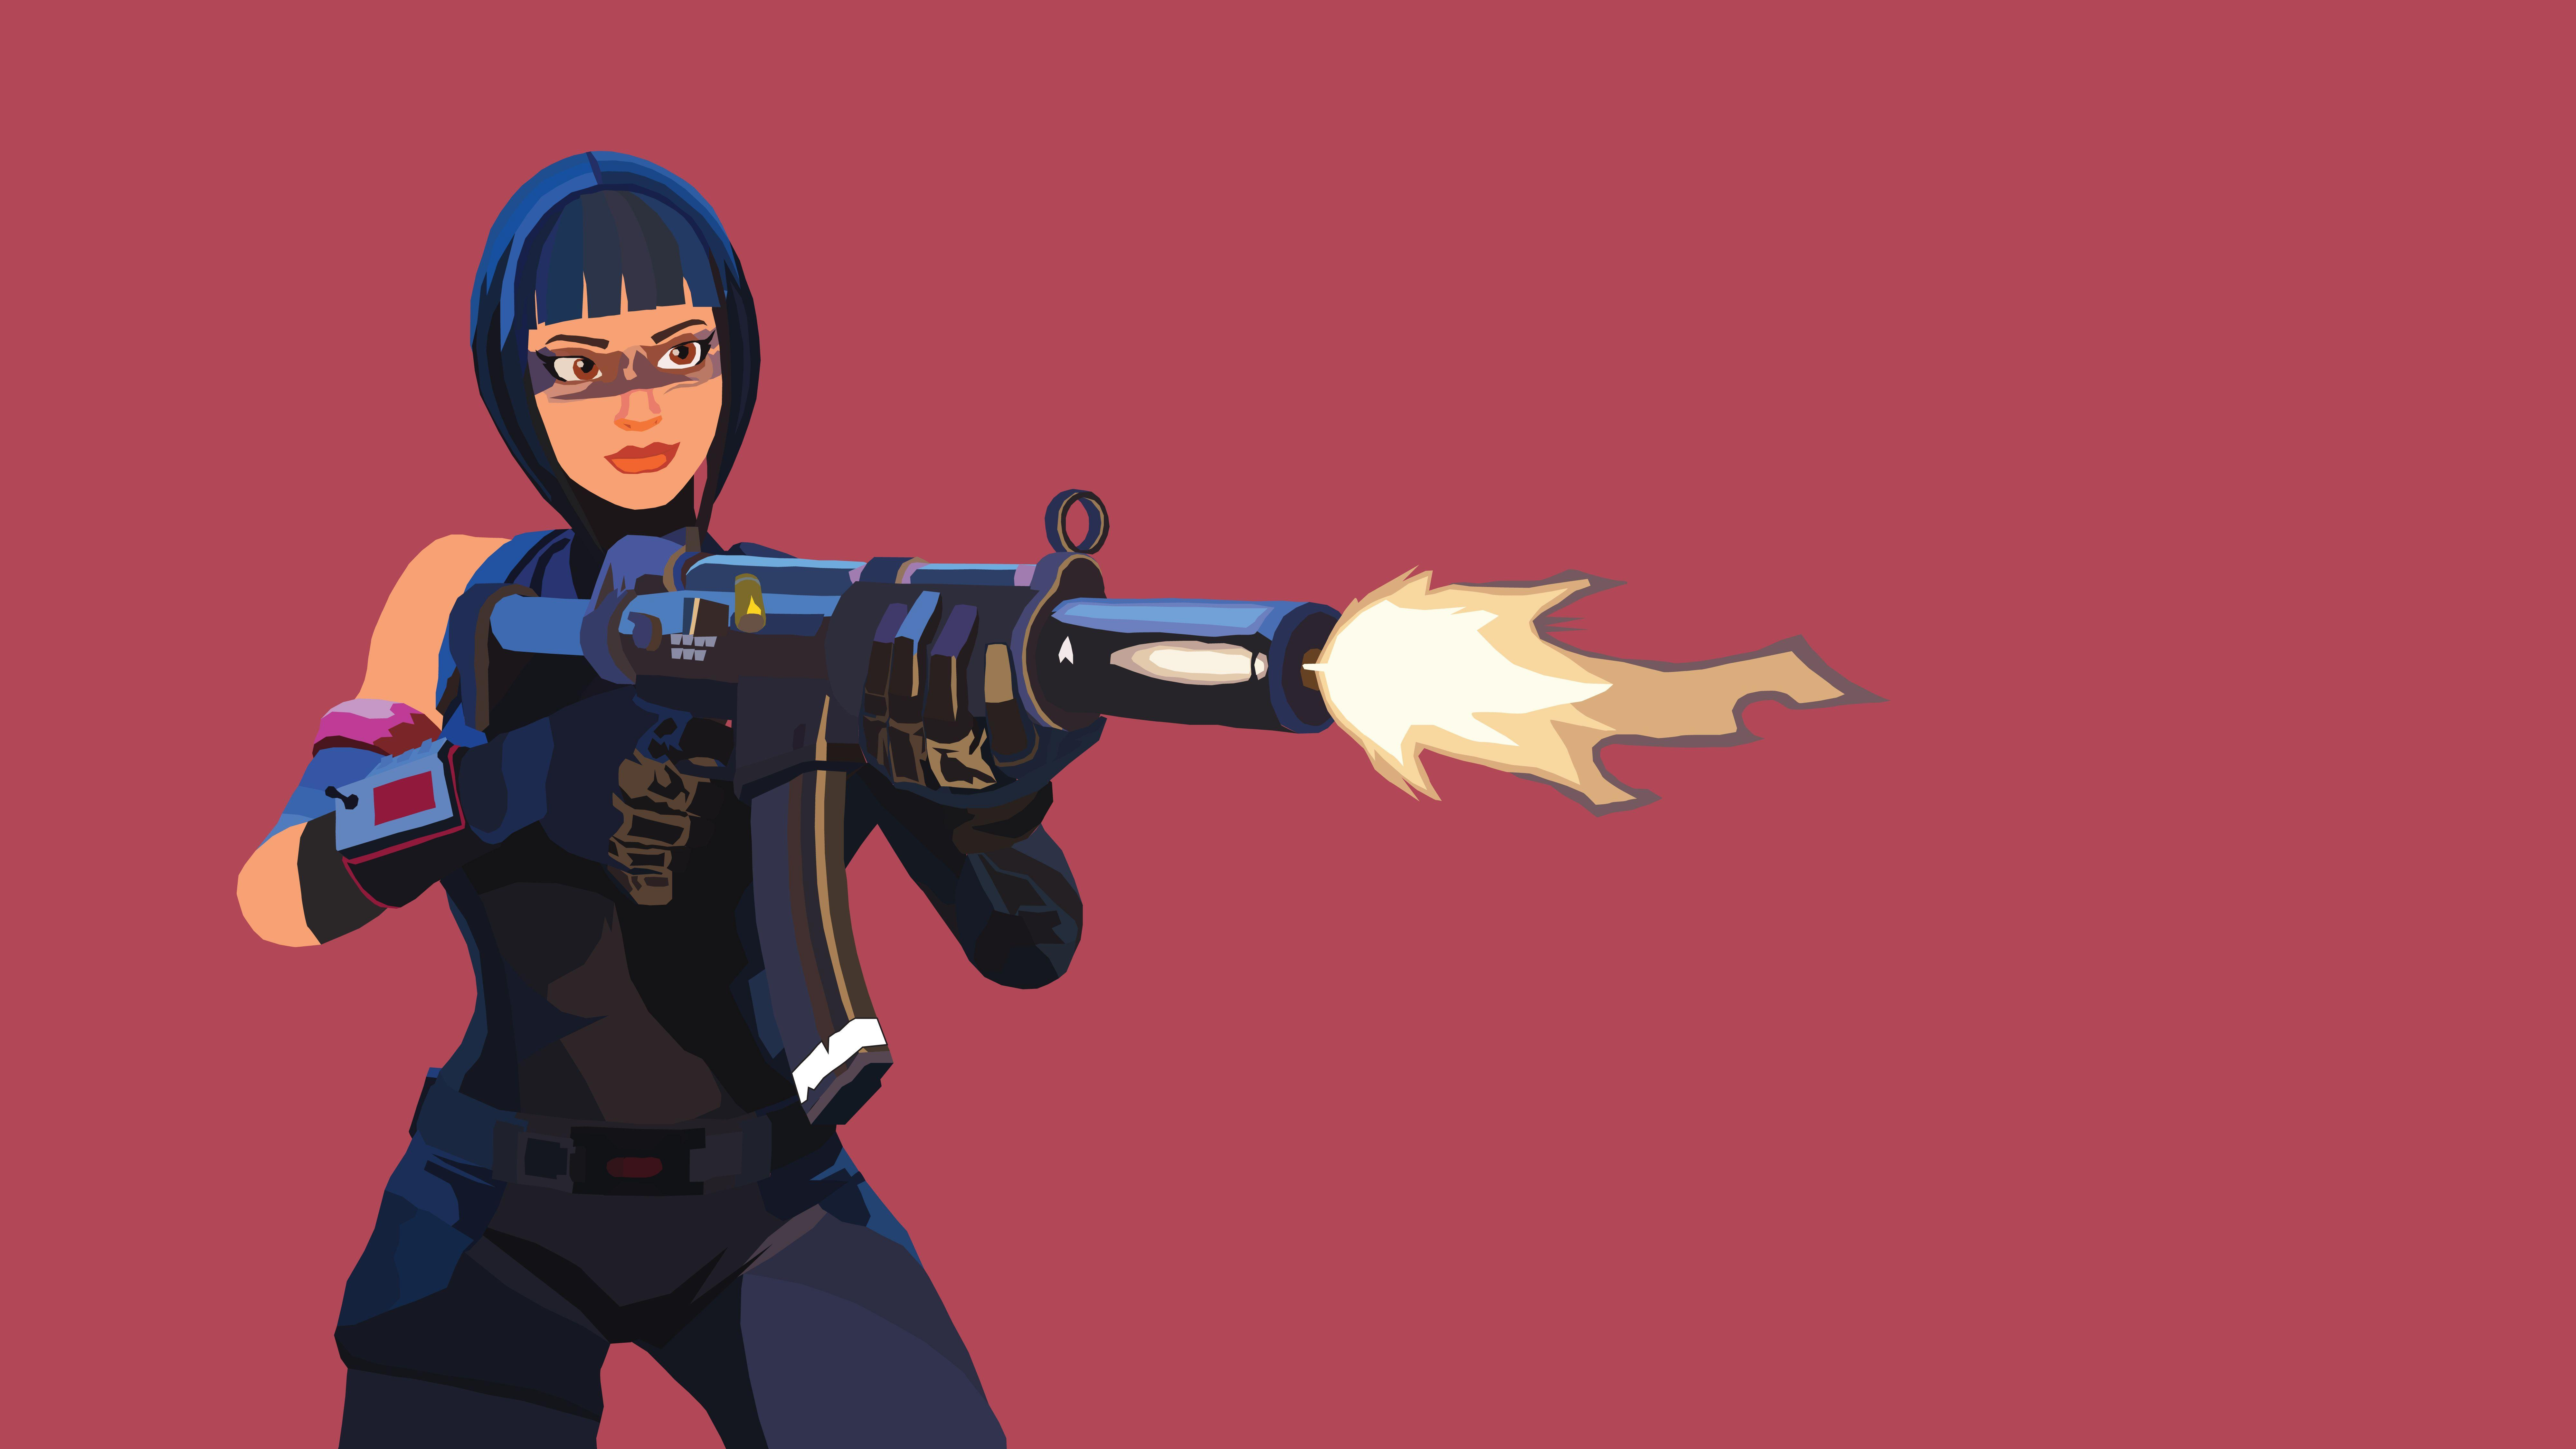 Shadow Ops Vector Illustration Wallpaper : FortNiteBR